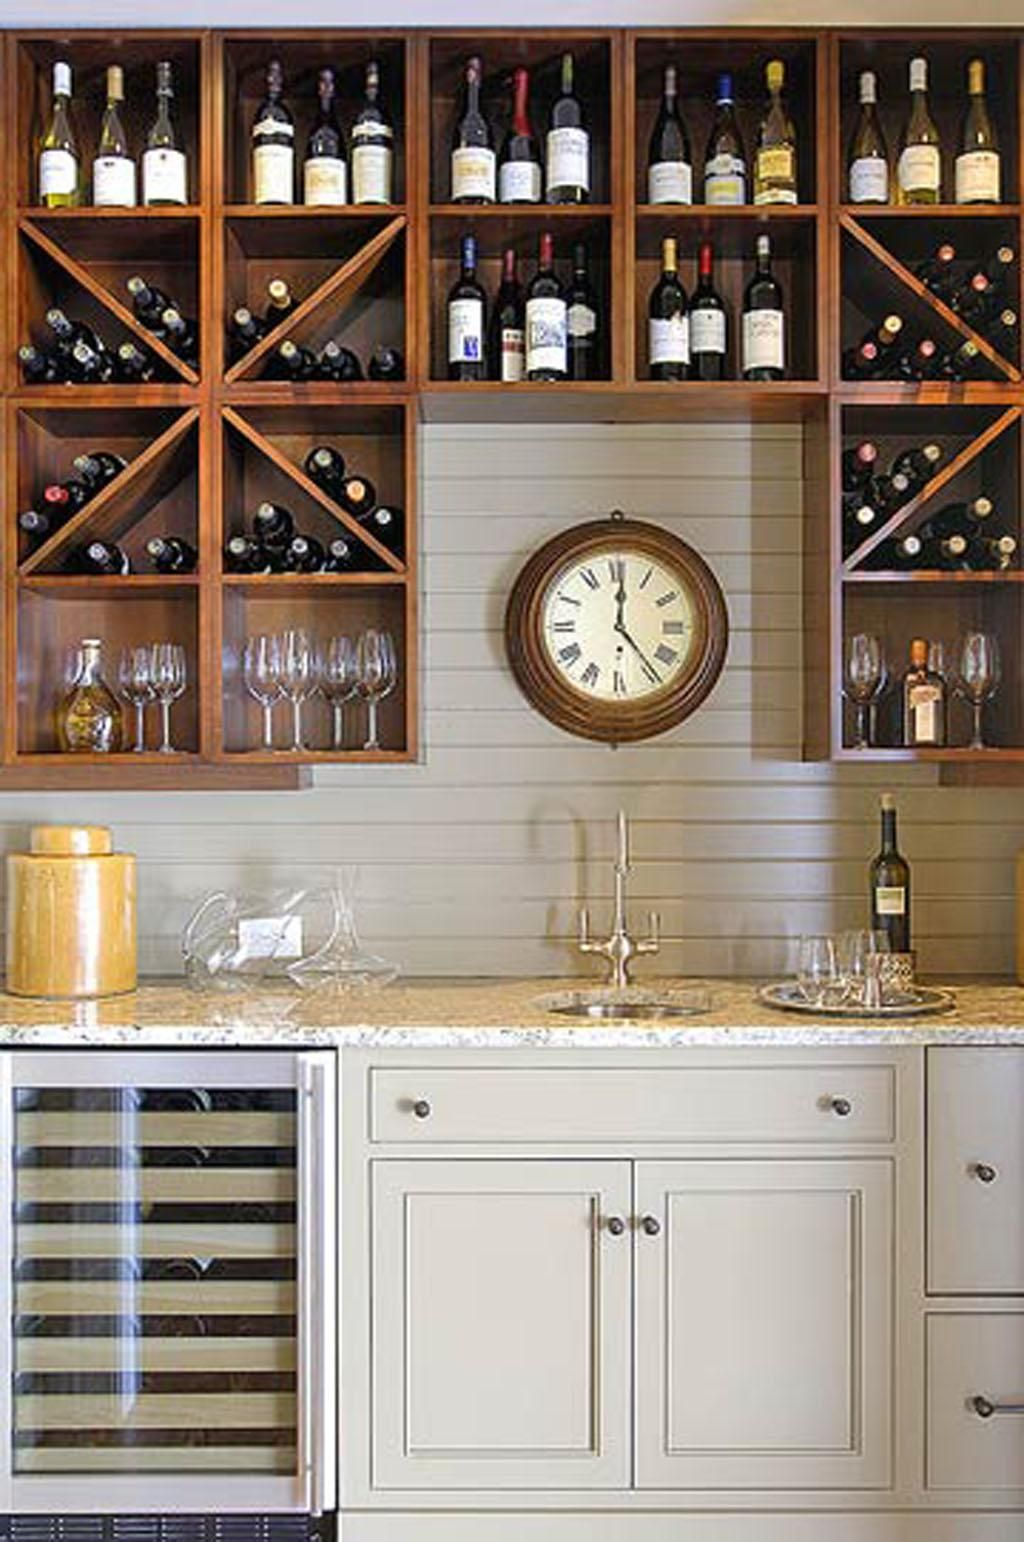 Lovely Wine Bar Decorating Ideas Home Part - 11: Wine Bar Decorating Ideas Home Wet Bar Wine Storage Wine Bar Wine .